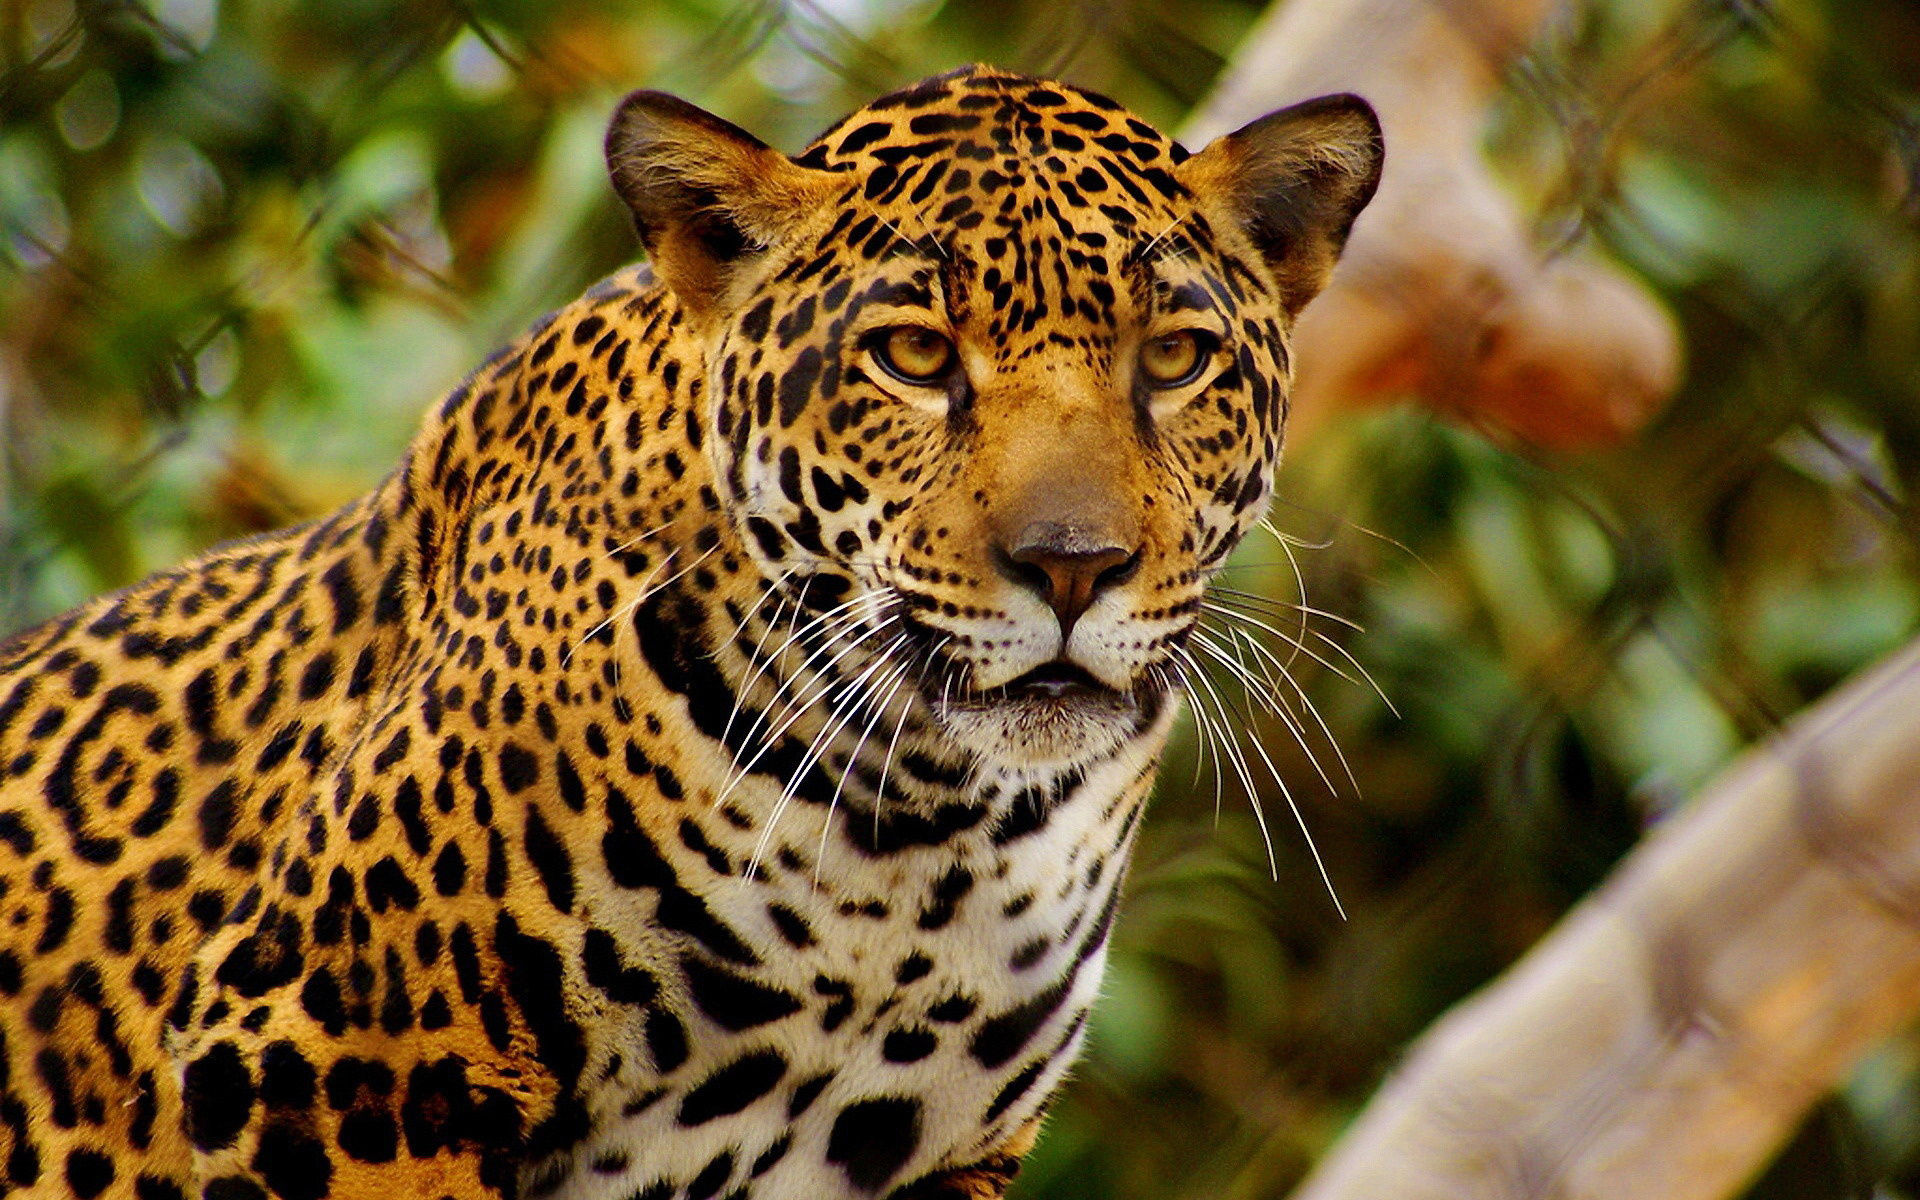 Jaguar hd wallpaper background image 1920x1200 id - Jaguar animal hd wallpapers ...